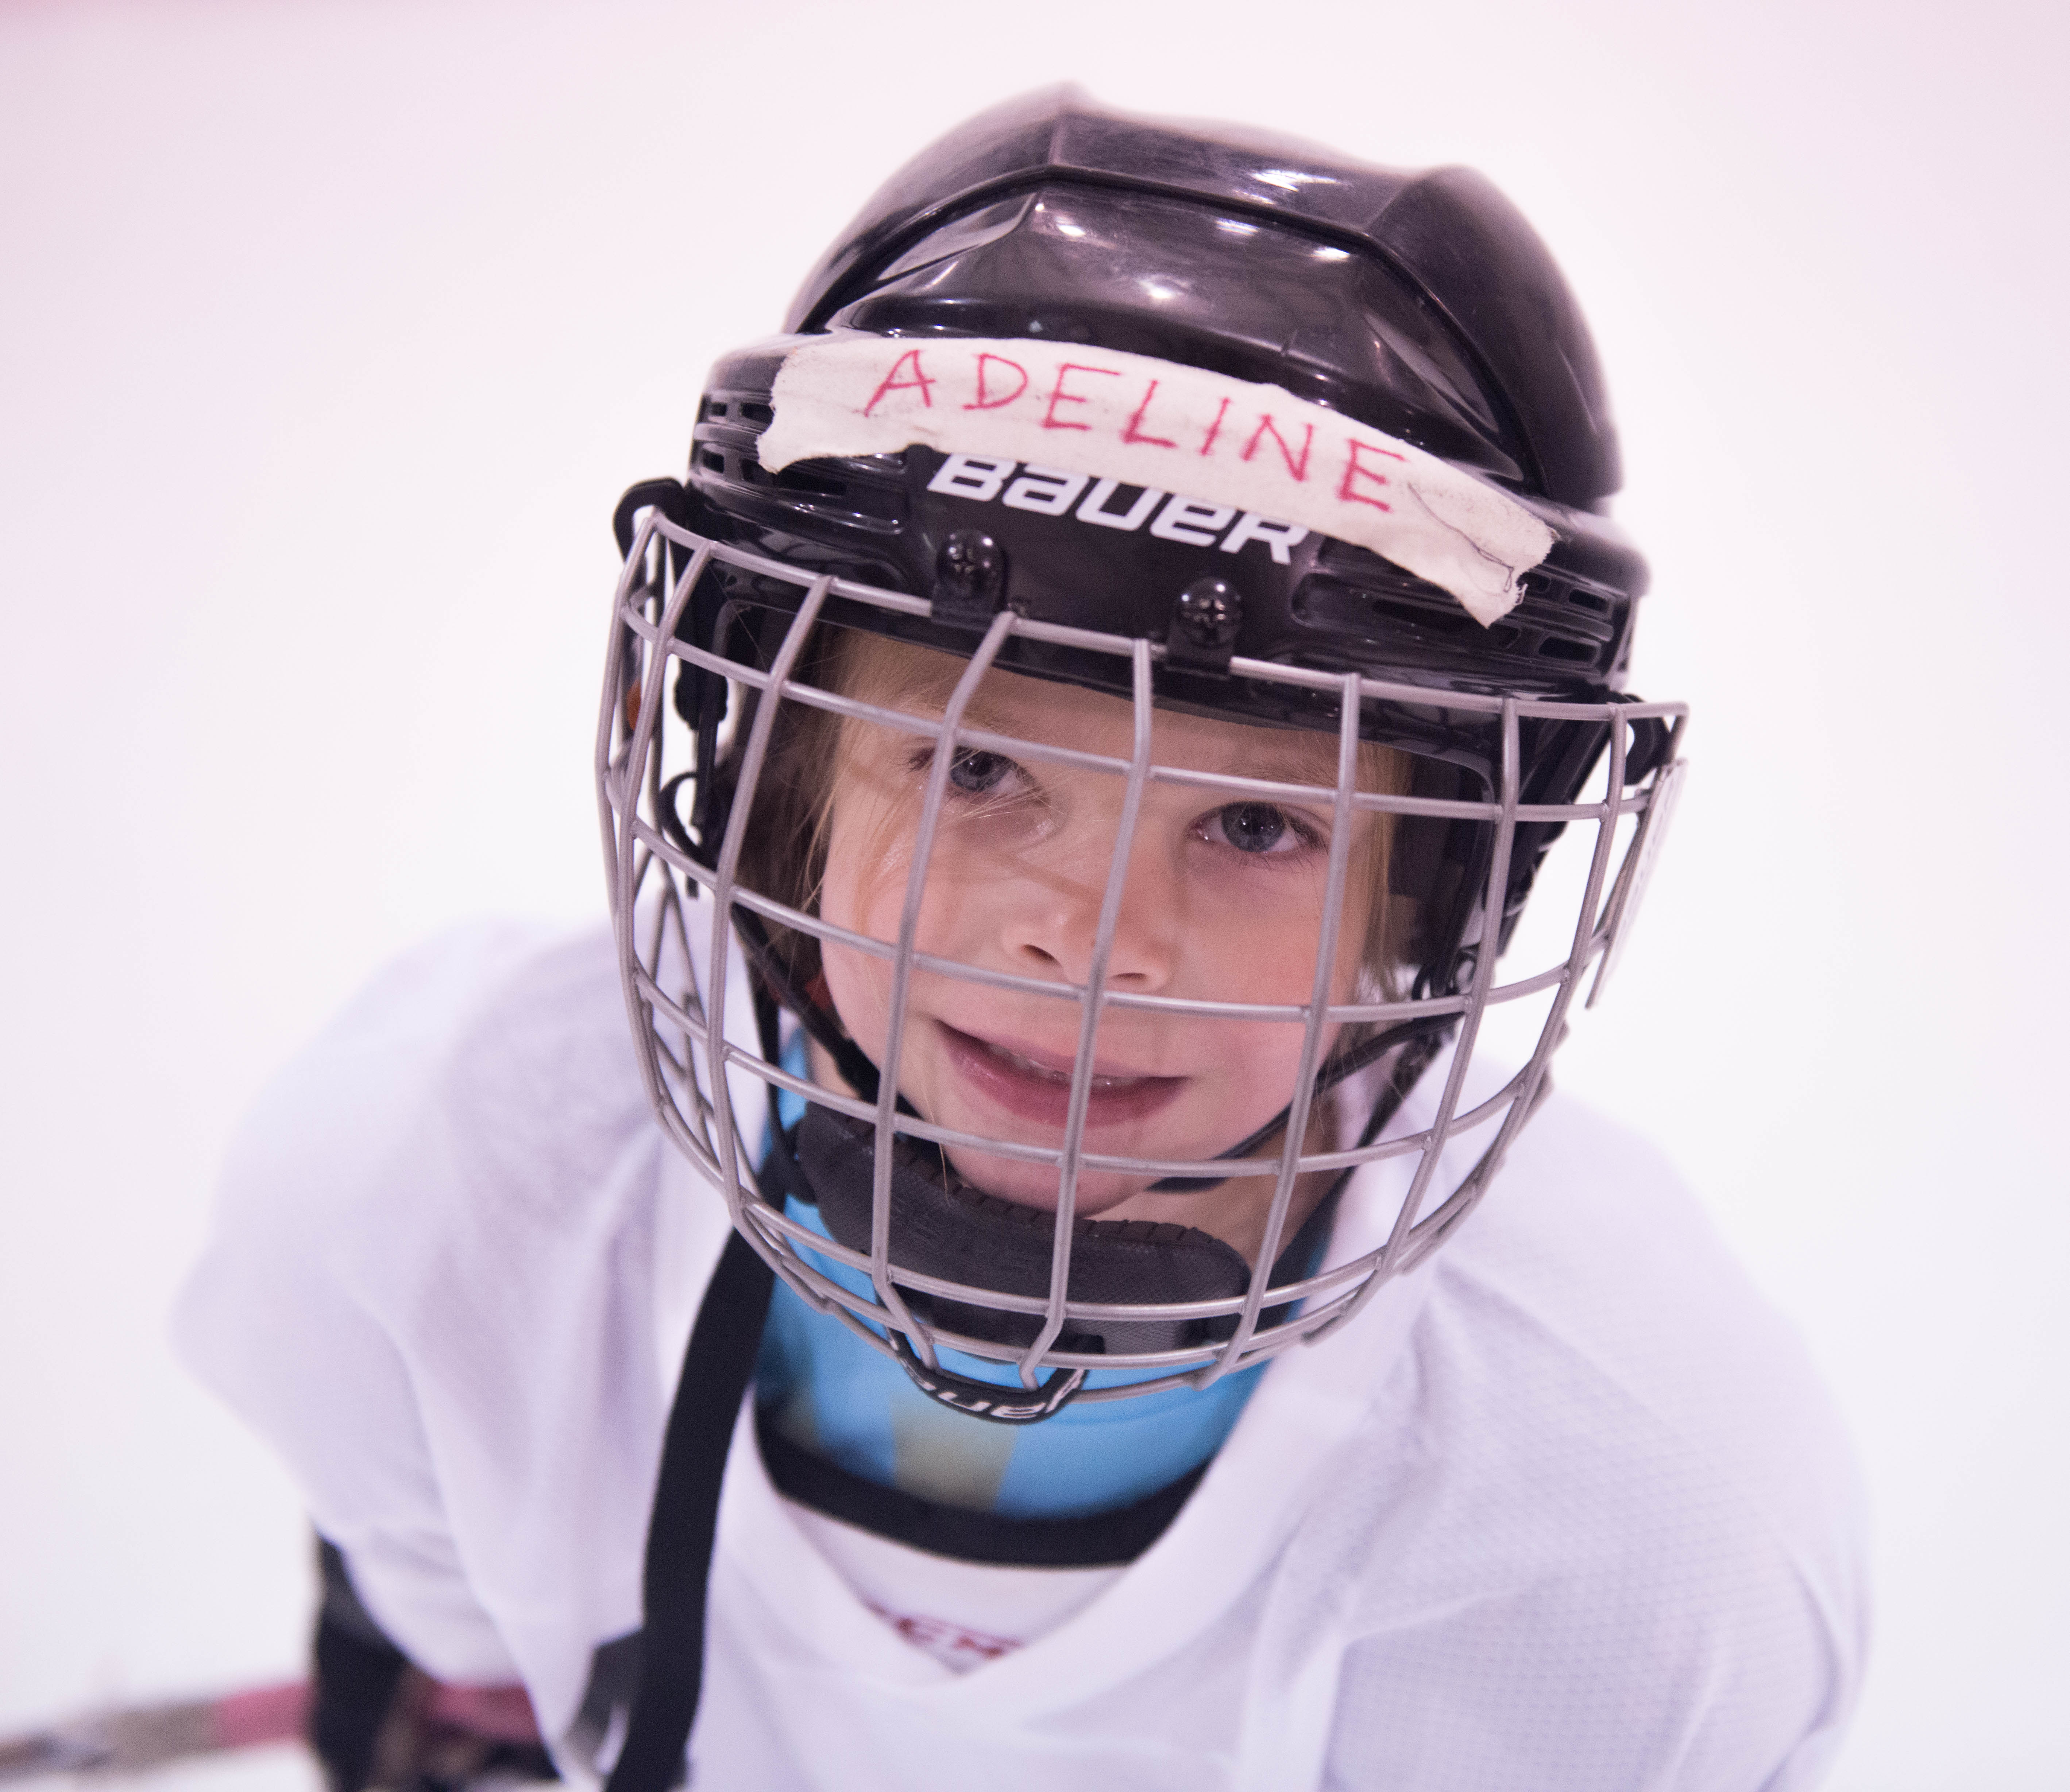 Adeline Janson flashes a quick smile through her hockey cage while skates around Treadwell Ice Arena at JDIA's Learn to Play afternoon. (Photo by Steve Quinn)